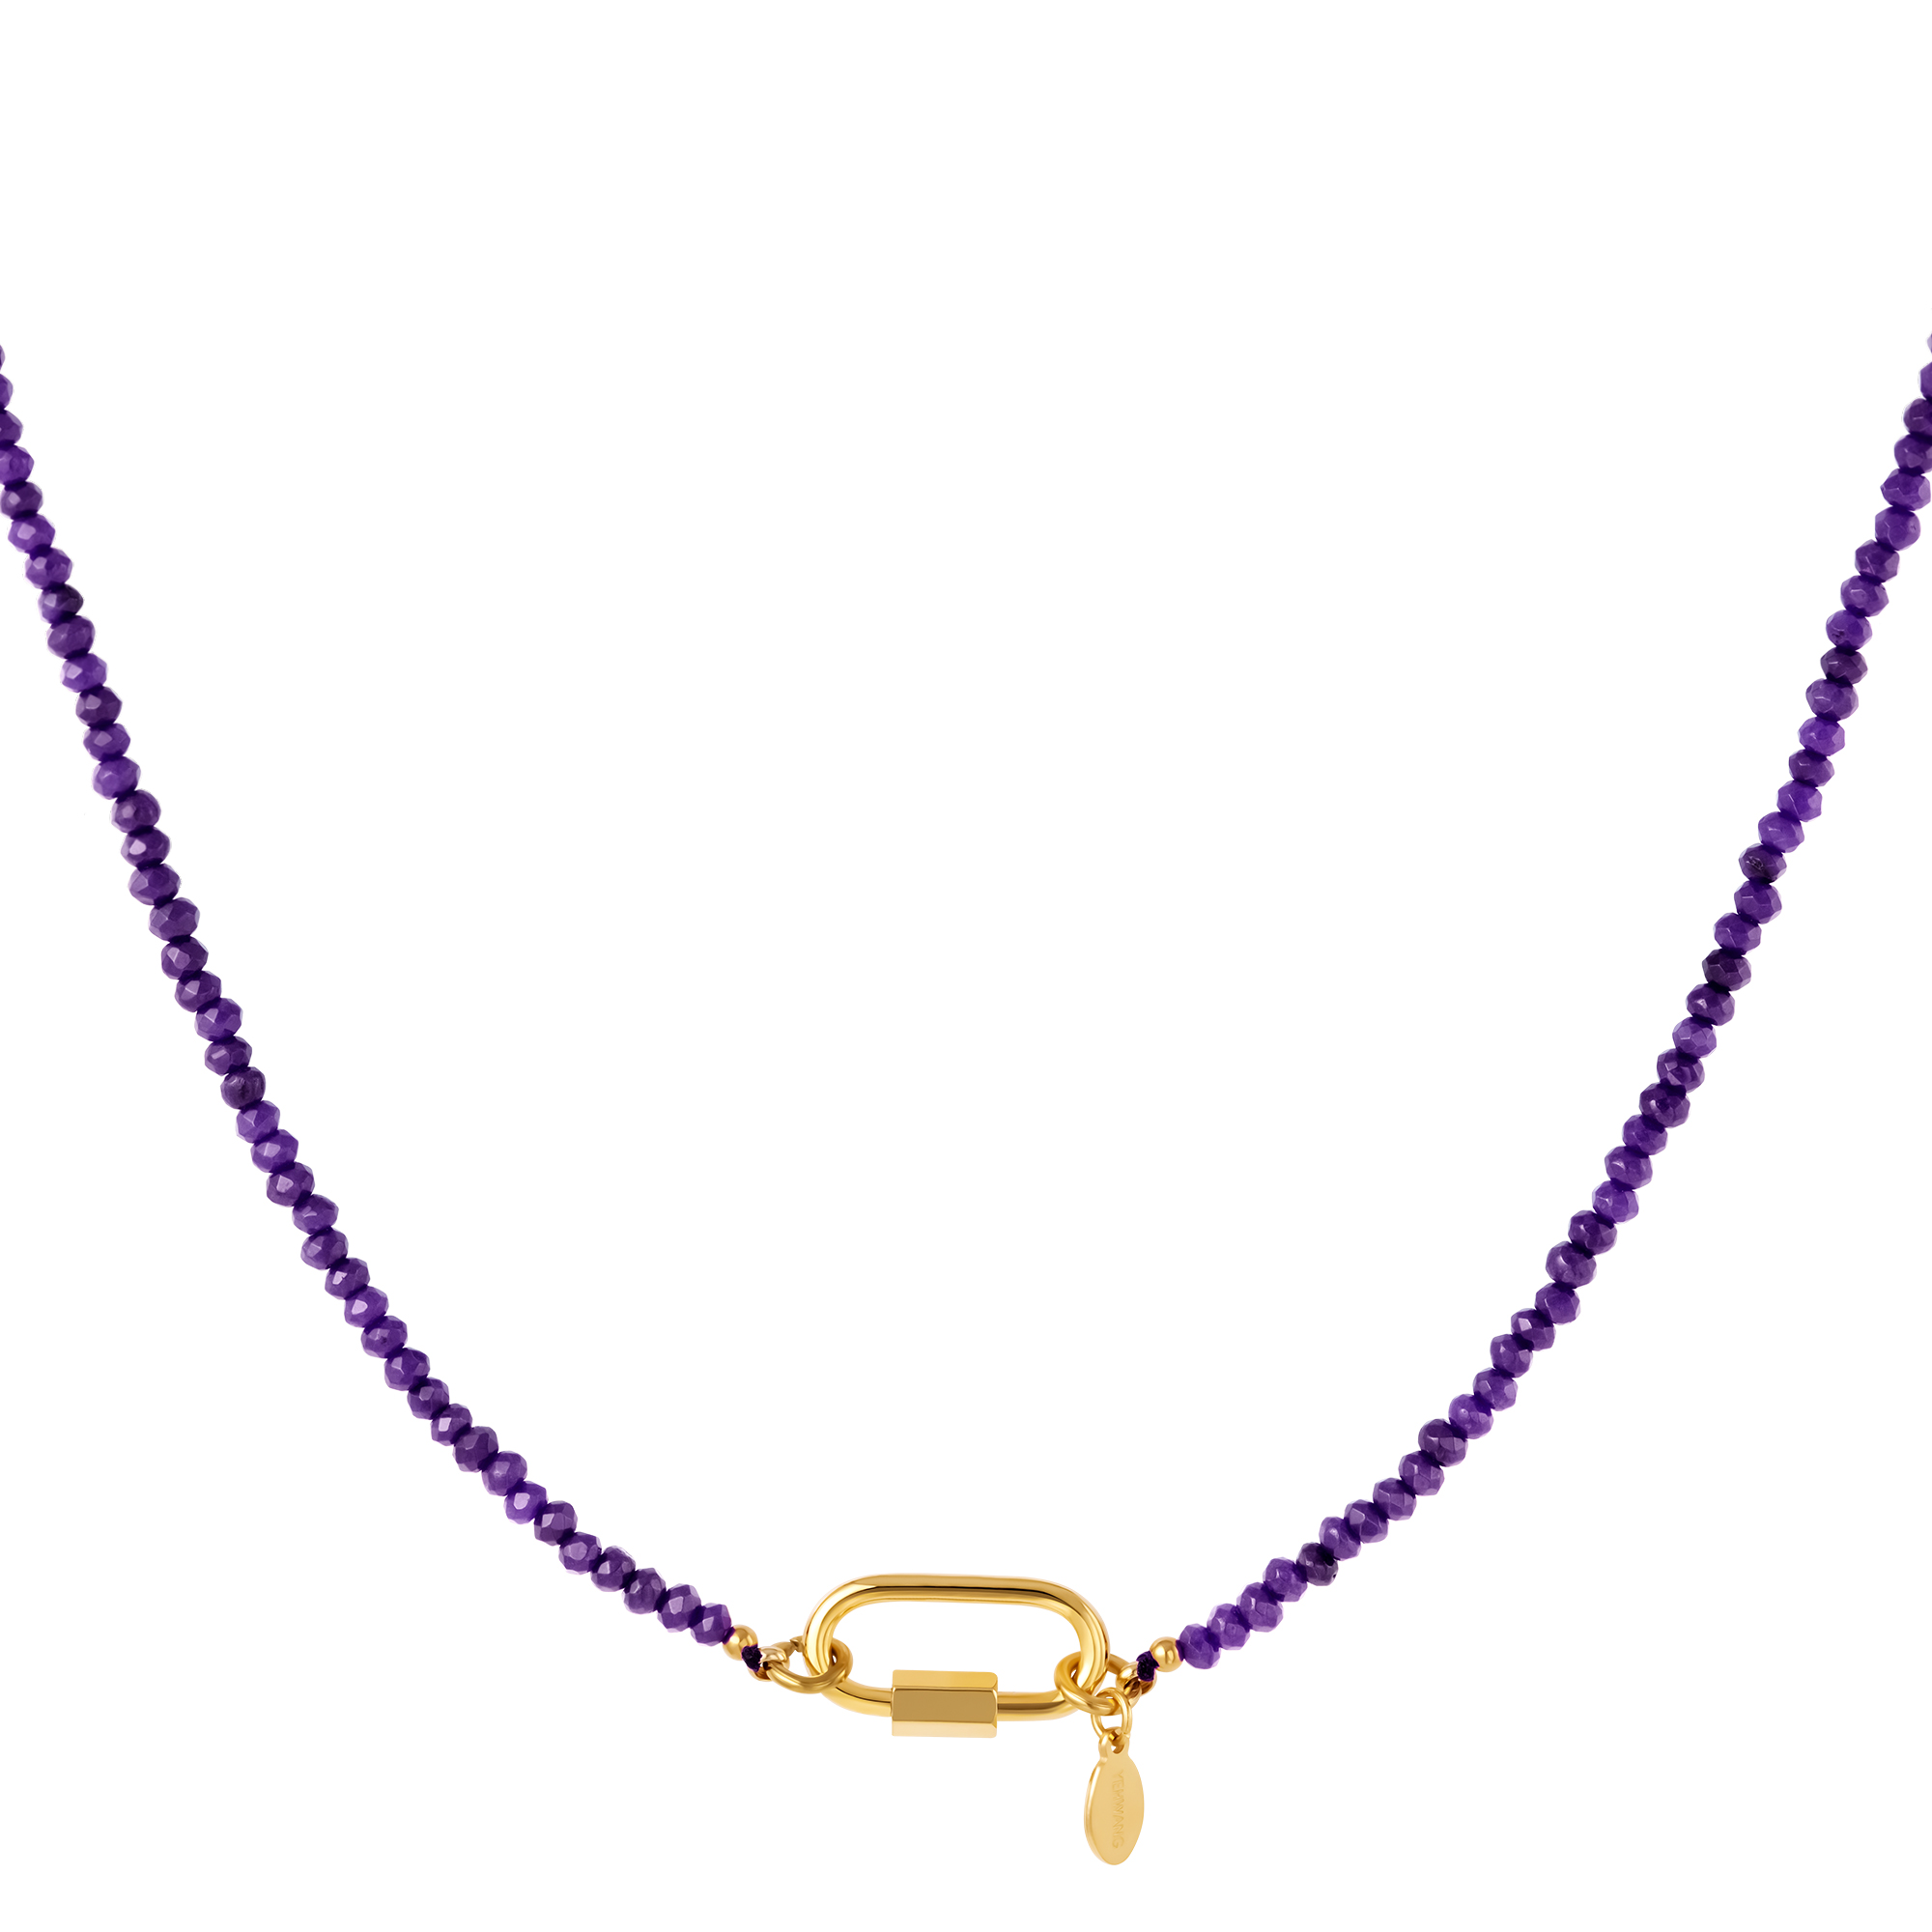 Necklace with carabiner lock